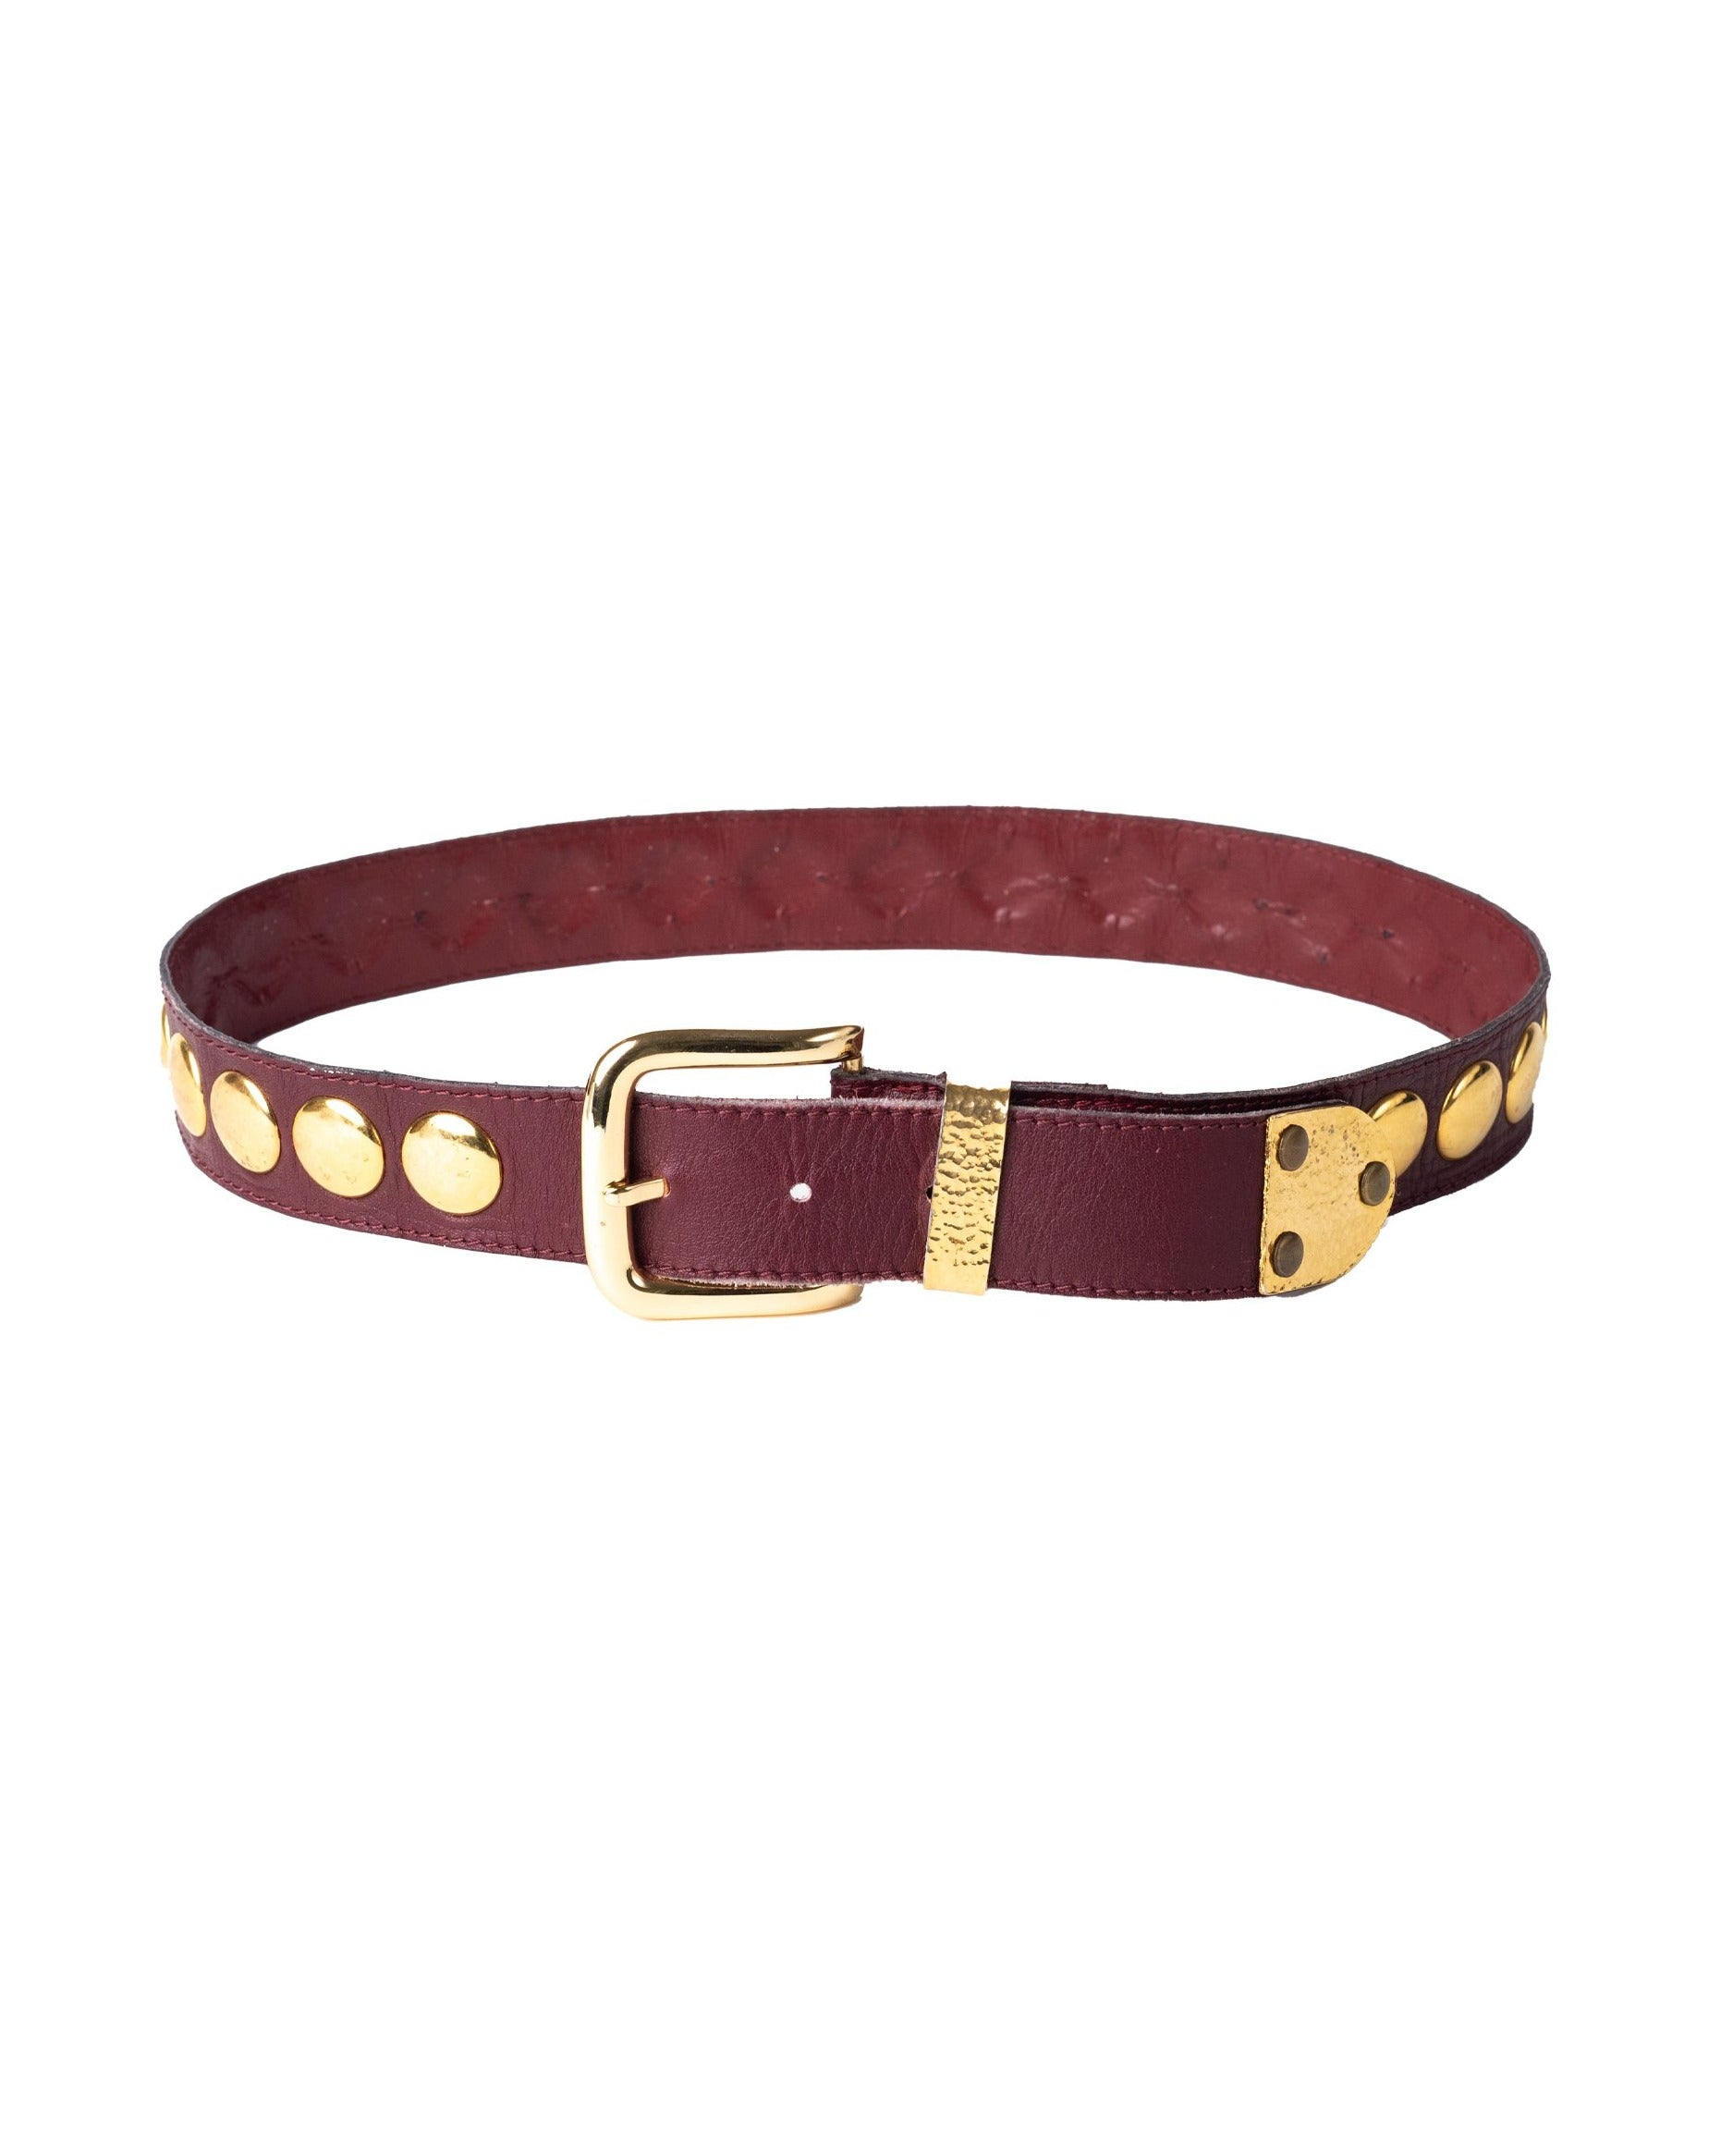 Yves Saint Laurent <br> 70's leather belt with oversized gold studs